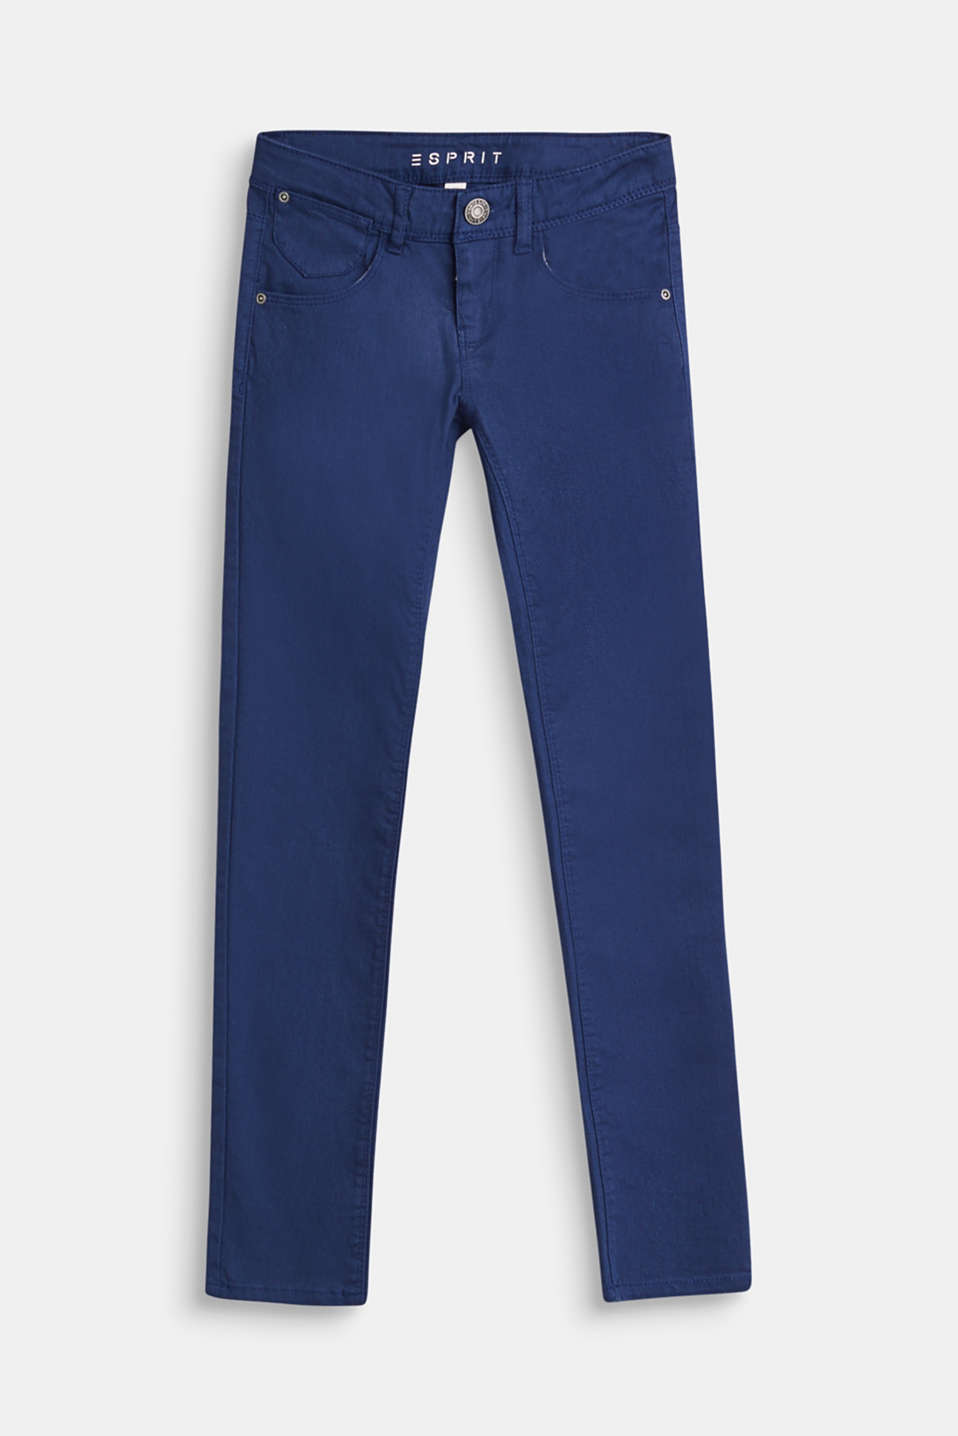 Esprit - Coloured stretch jeans with a coin pocket